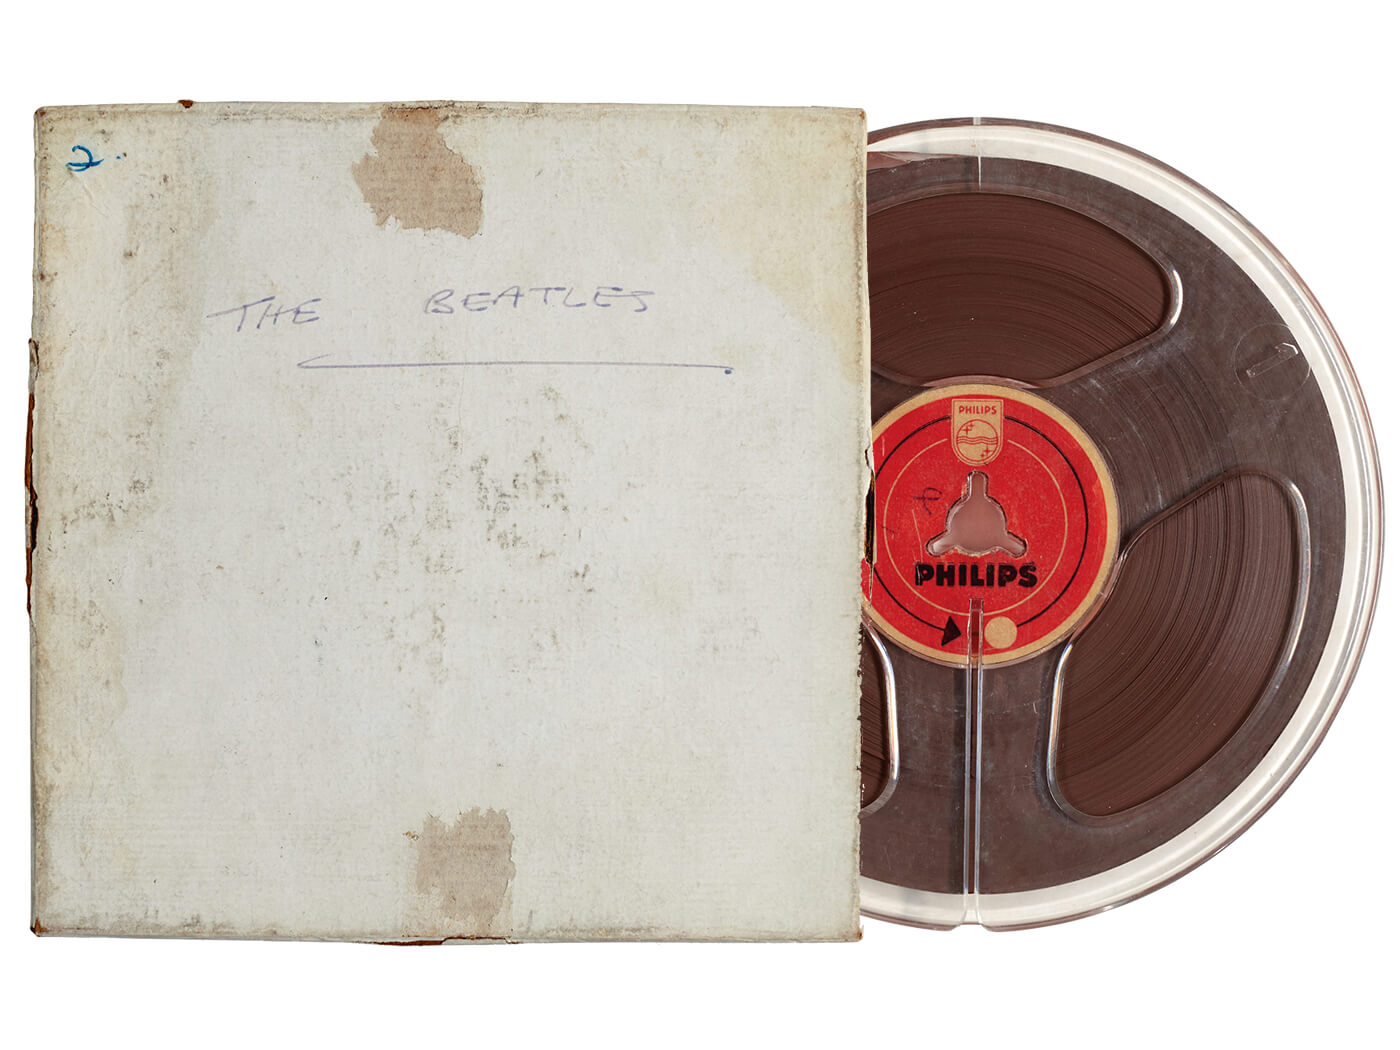 The Beatles' Decca audition tape up for auction at Sotheby's - UNCUT